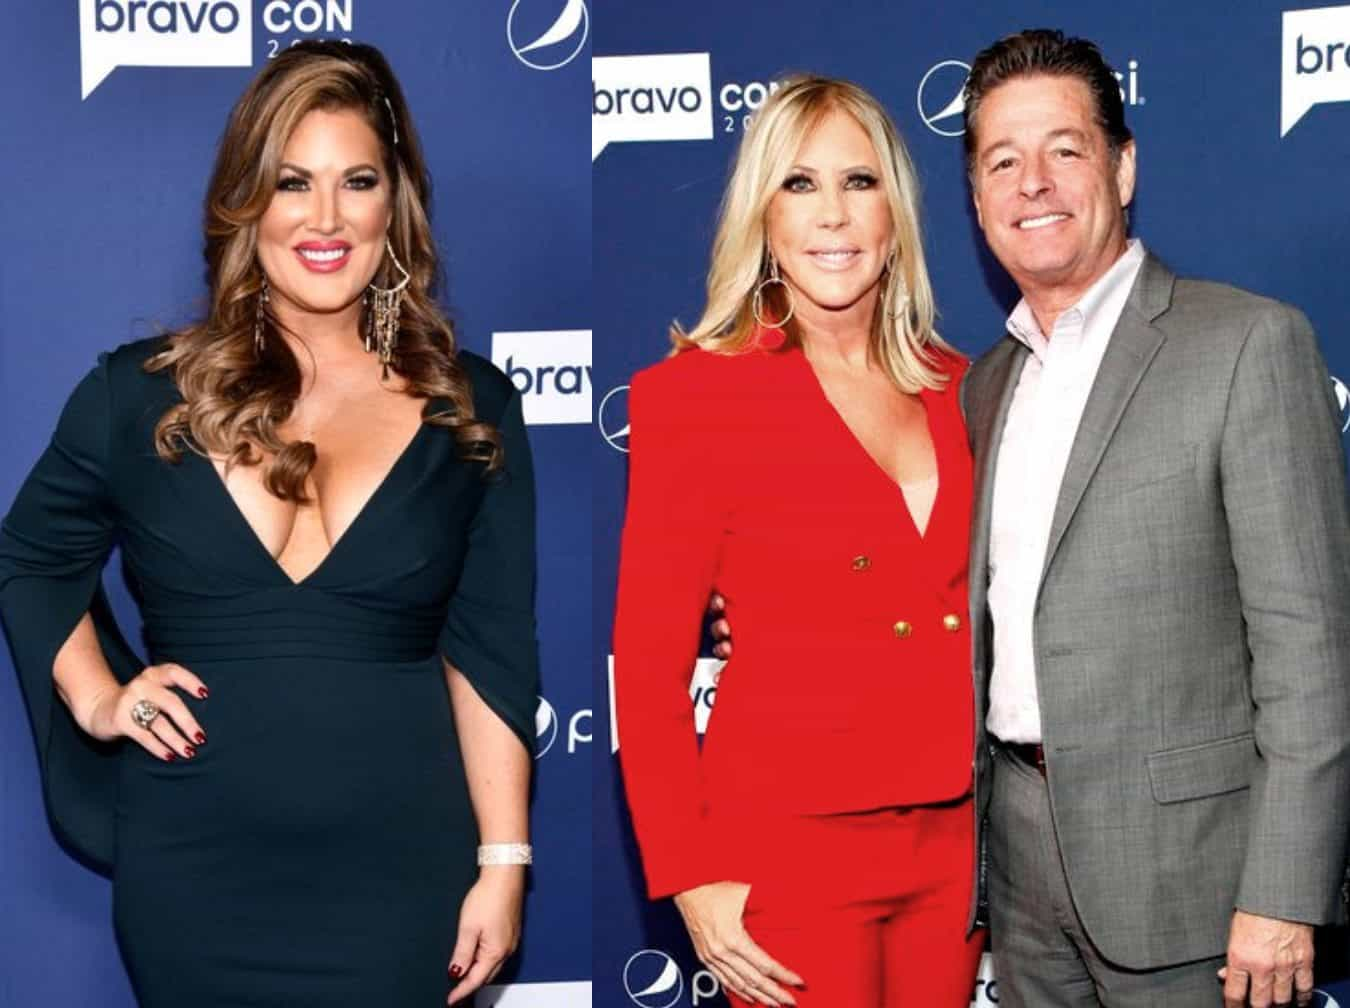 RHOC's Emily Simpson Suggests Vicki Gunvalson's Fiancé Steve Lodge is 'Mooching' as Vicki Claims She Never Lied About Kelly 'Train' Rumors and Shannon Abuse Claims